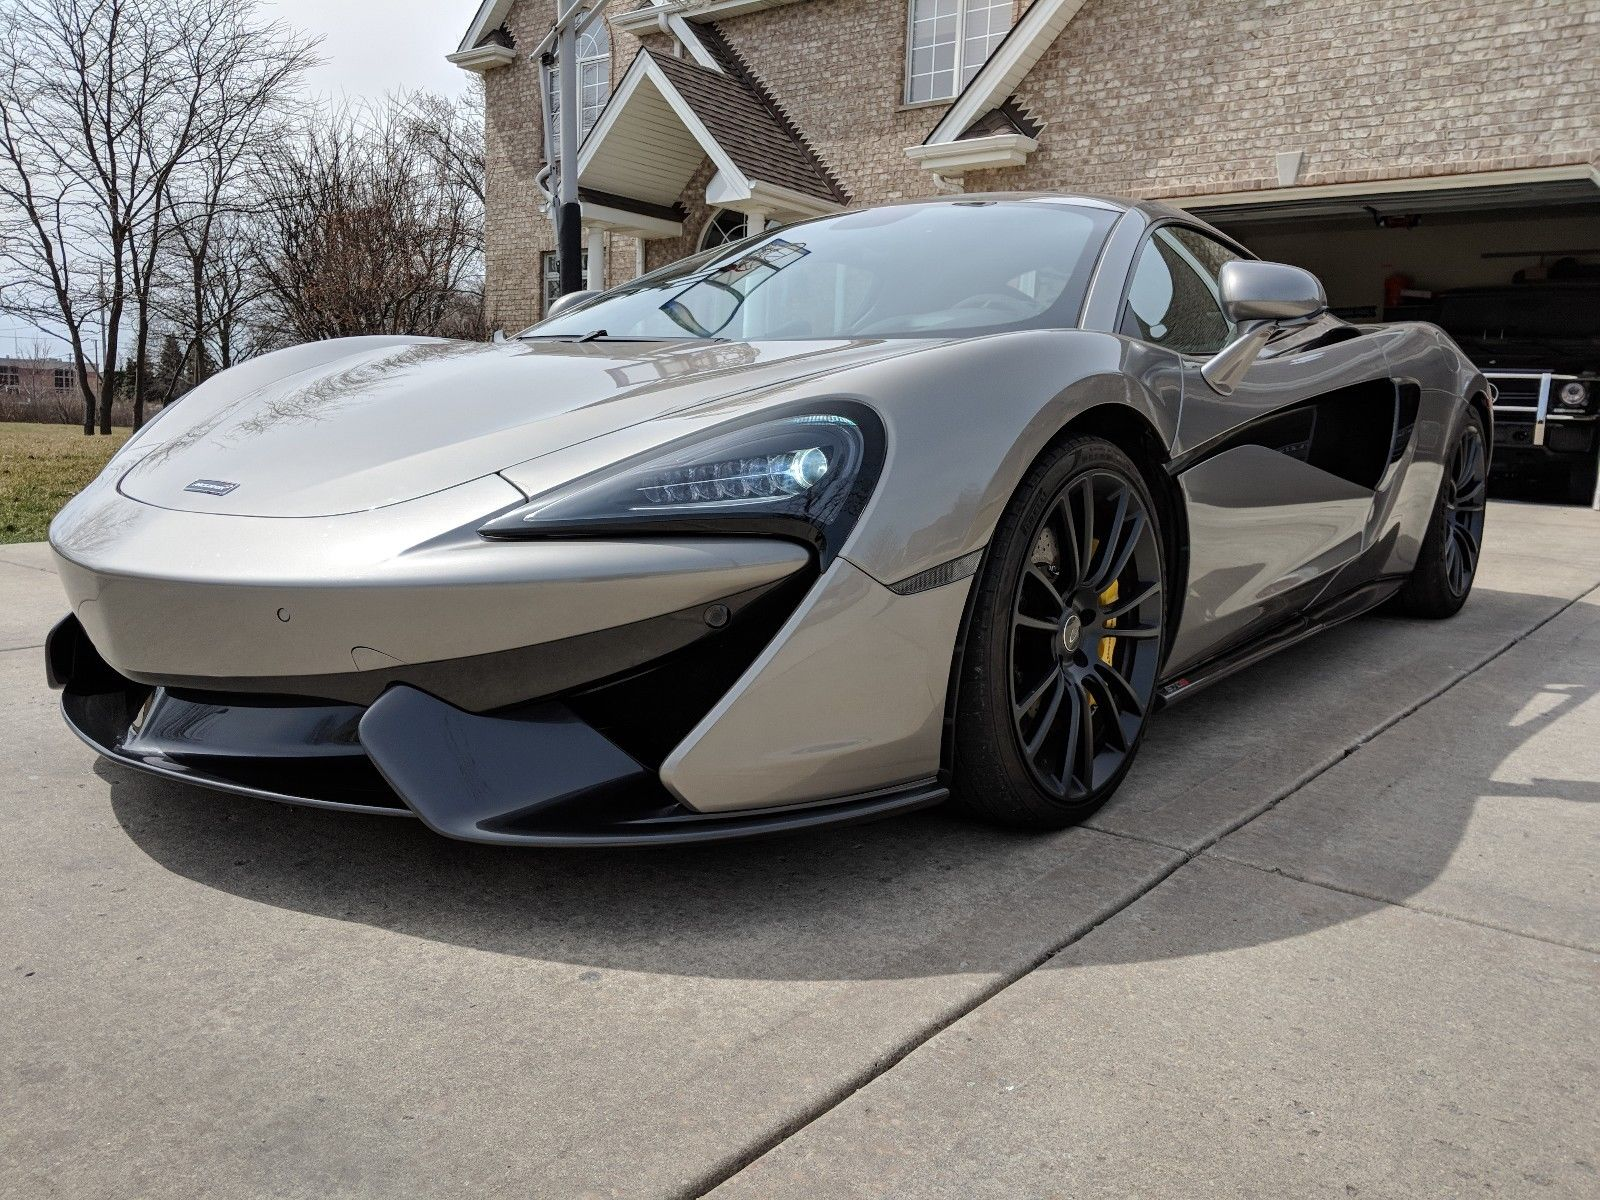 2016 McLaren 570 s | Buying Salvage Cars From Insurance Companies